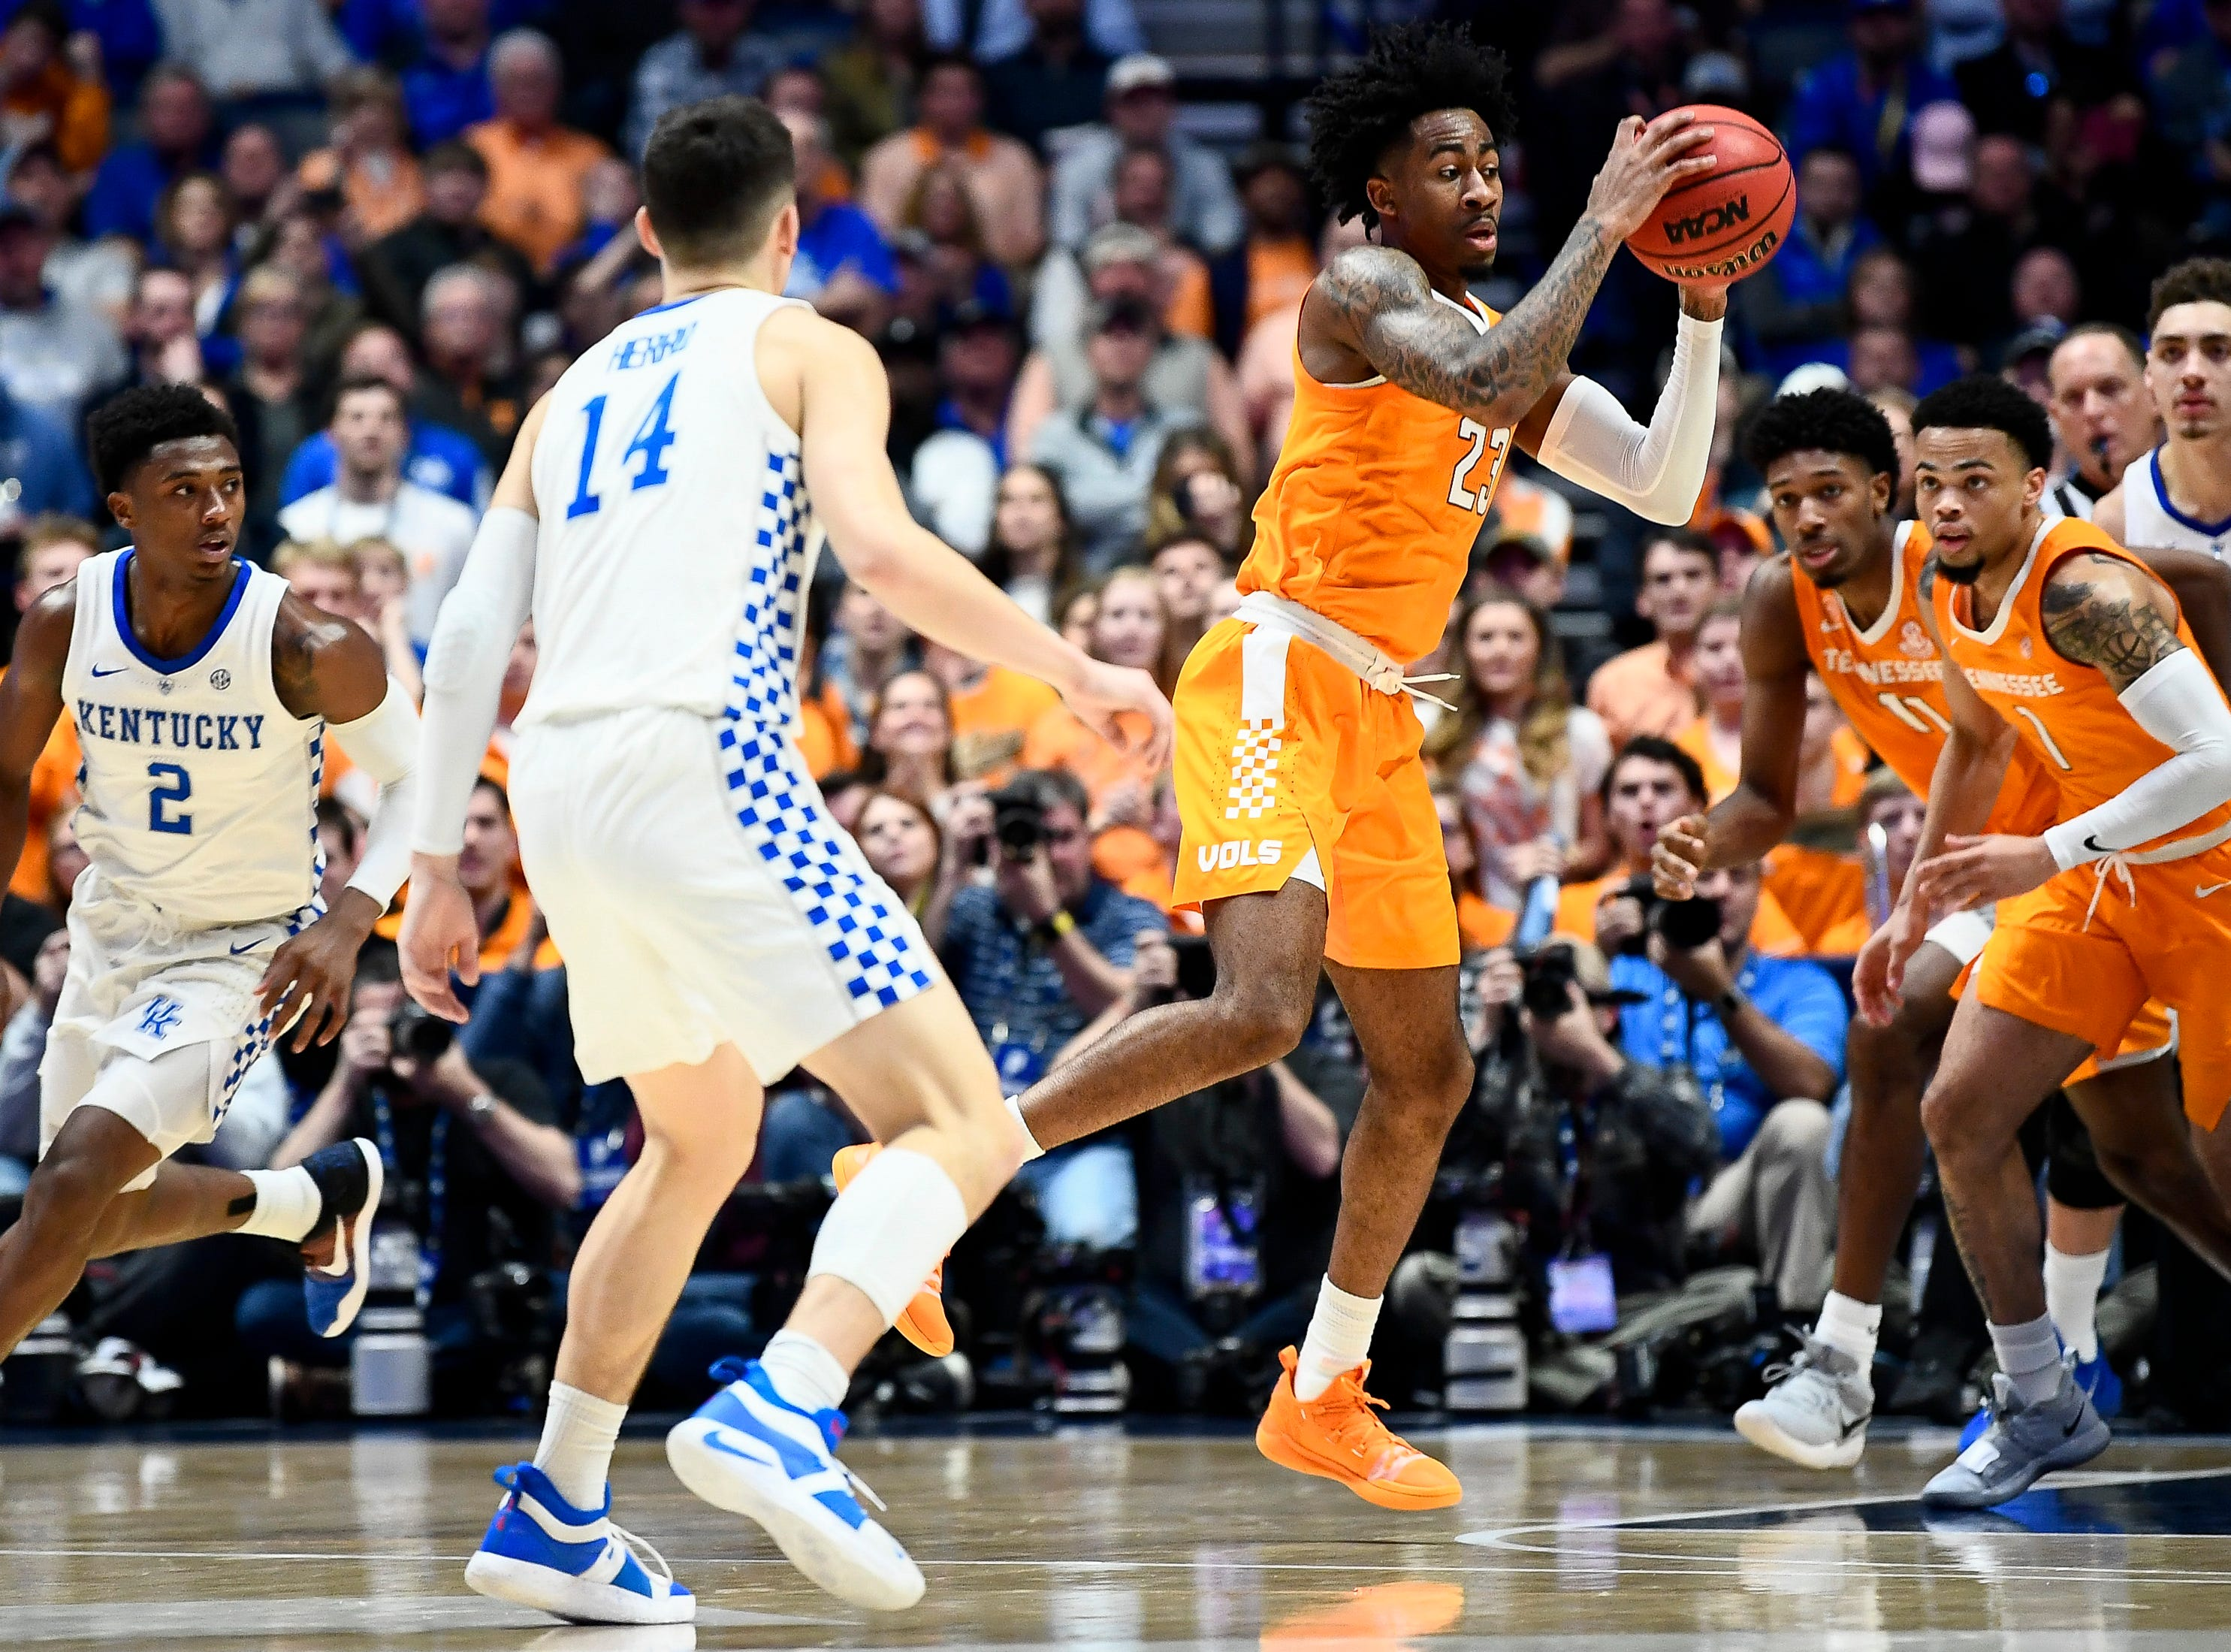 Tennessee guard Jordan Bowden (23) moves the ball against Kentucky during the first half of the SEC Men's Basketball Tournament semifinal game at Bridgestone Arena in Nashville, Tenn., Saturday, March 16, 2019.